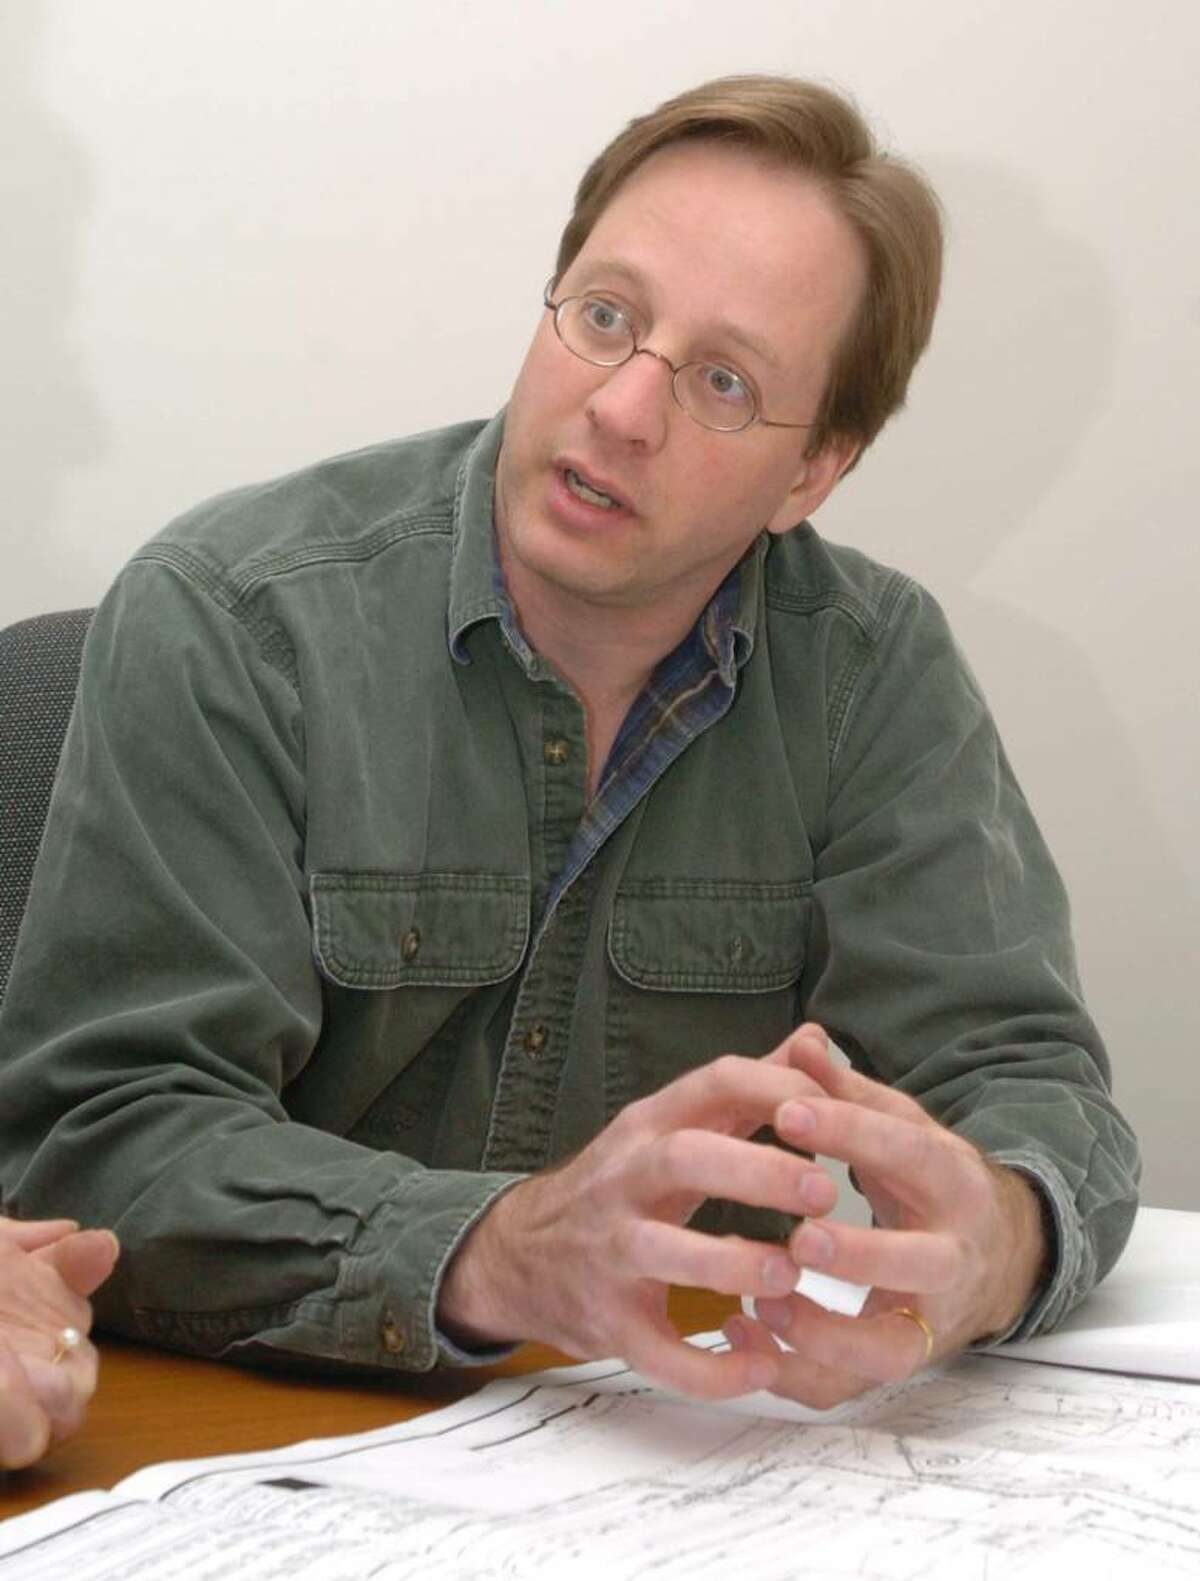 Michael Breede, of Ridgefield chats about future plans for a storm-water treatment plant in Newtown at the First Selectman's office in Newtown Friday, Dec 18, 2009.